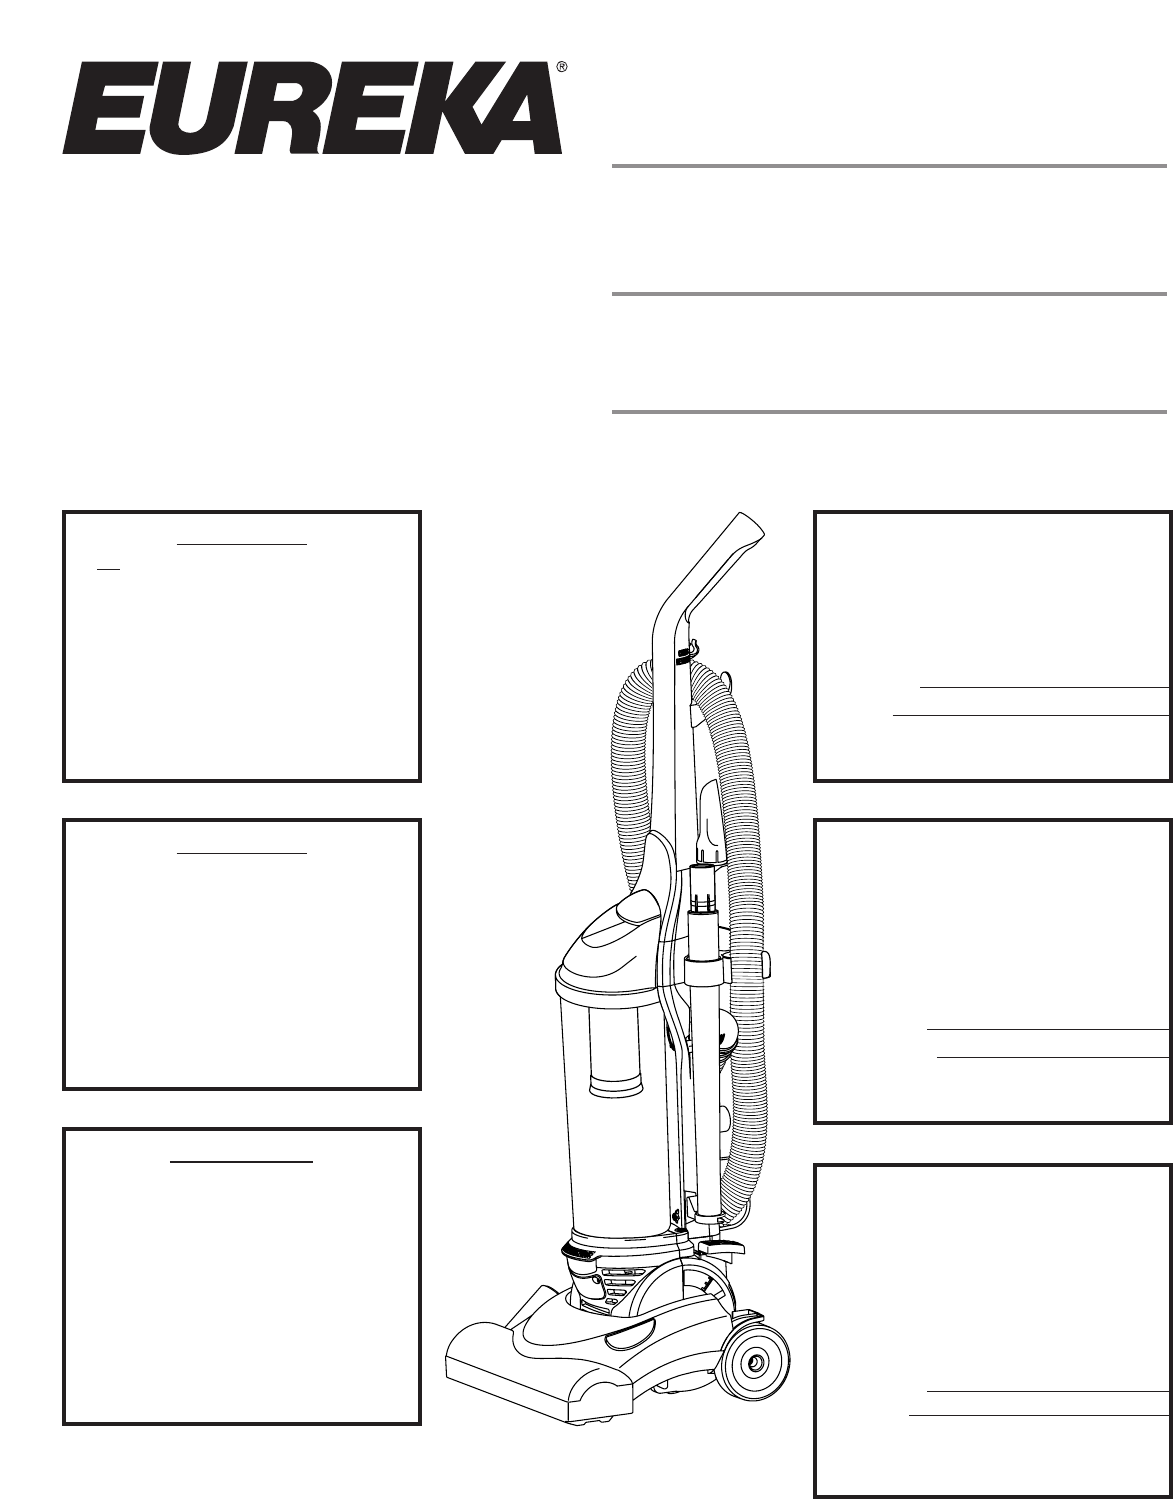 Eureka Vacuum Cleaner 4700 Series User Guide